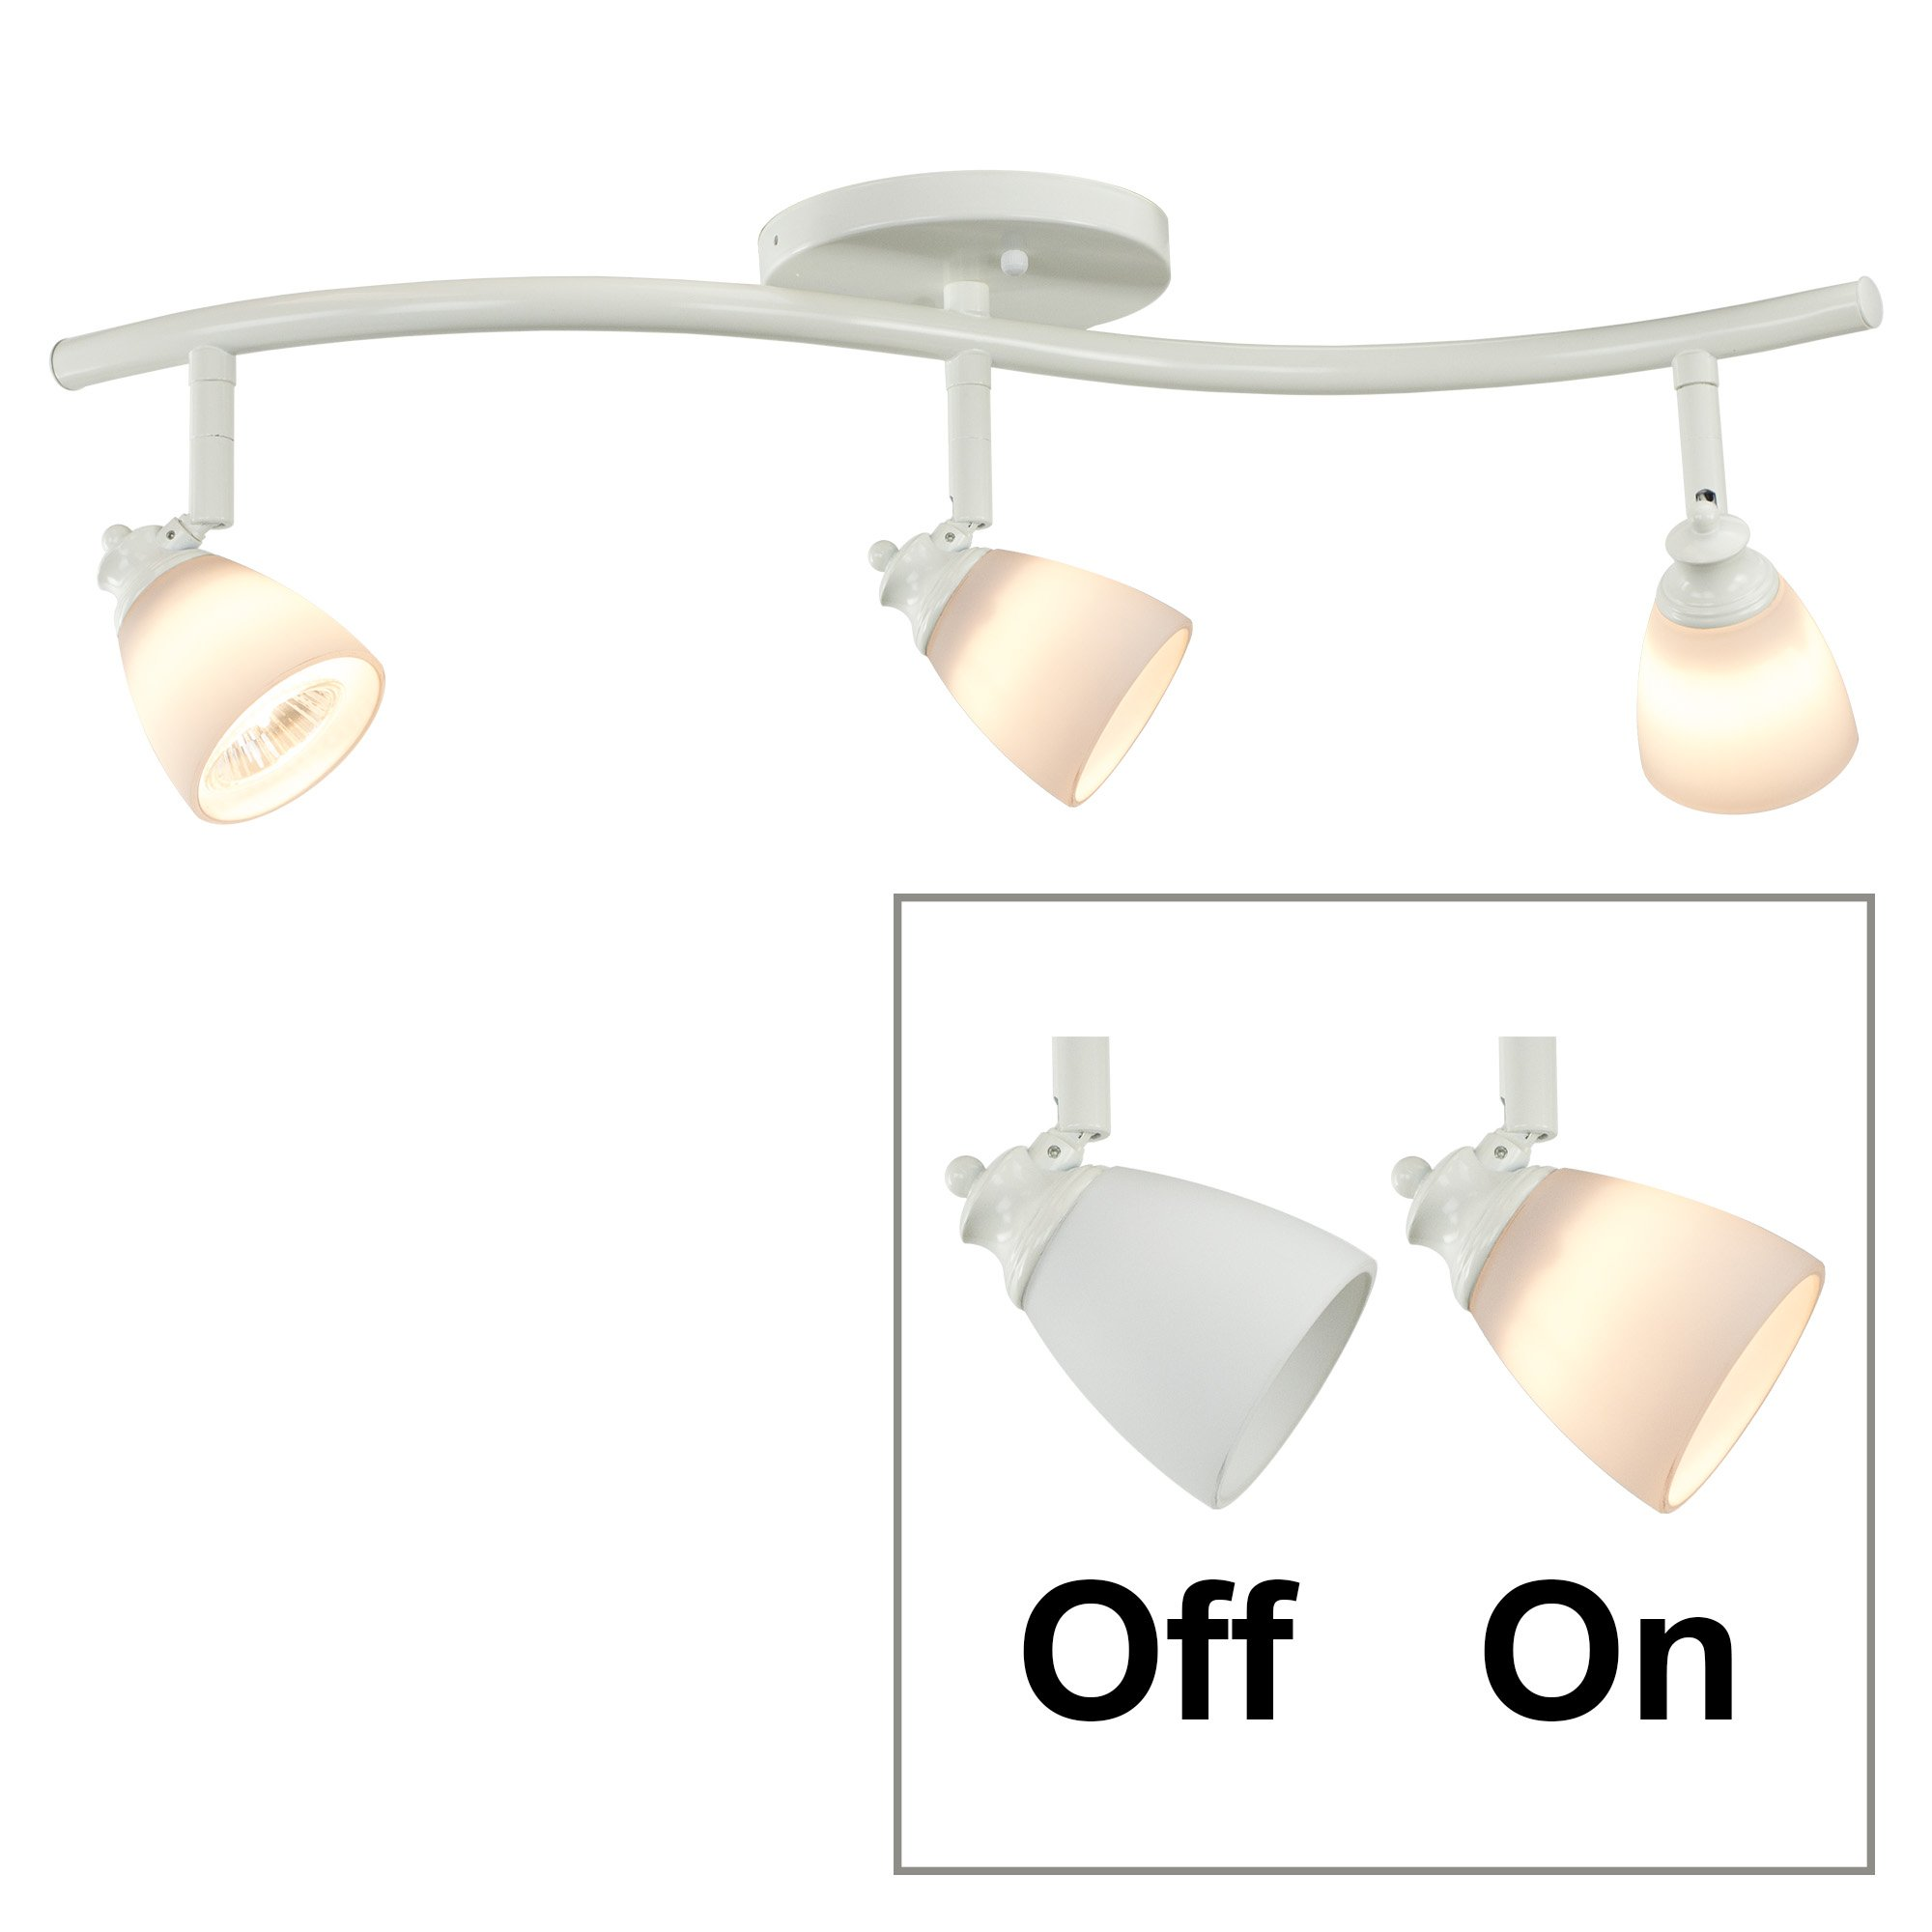 Direct-Lighting 3 Lights Adjustable Track Lighting Kit - White Finish - White Glass Track Heads - GU10 Bulbs Included. D268-23C-WH-WH